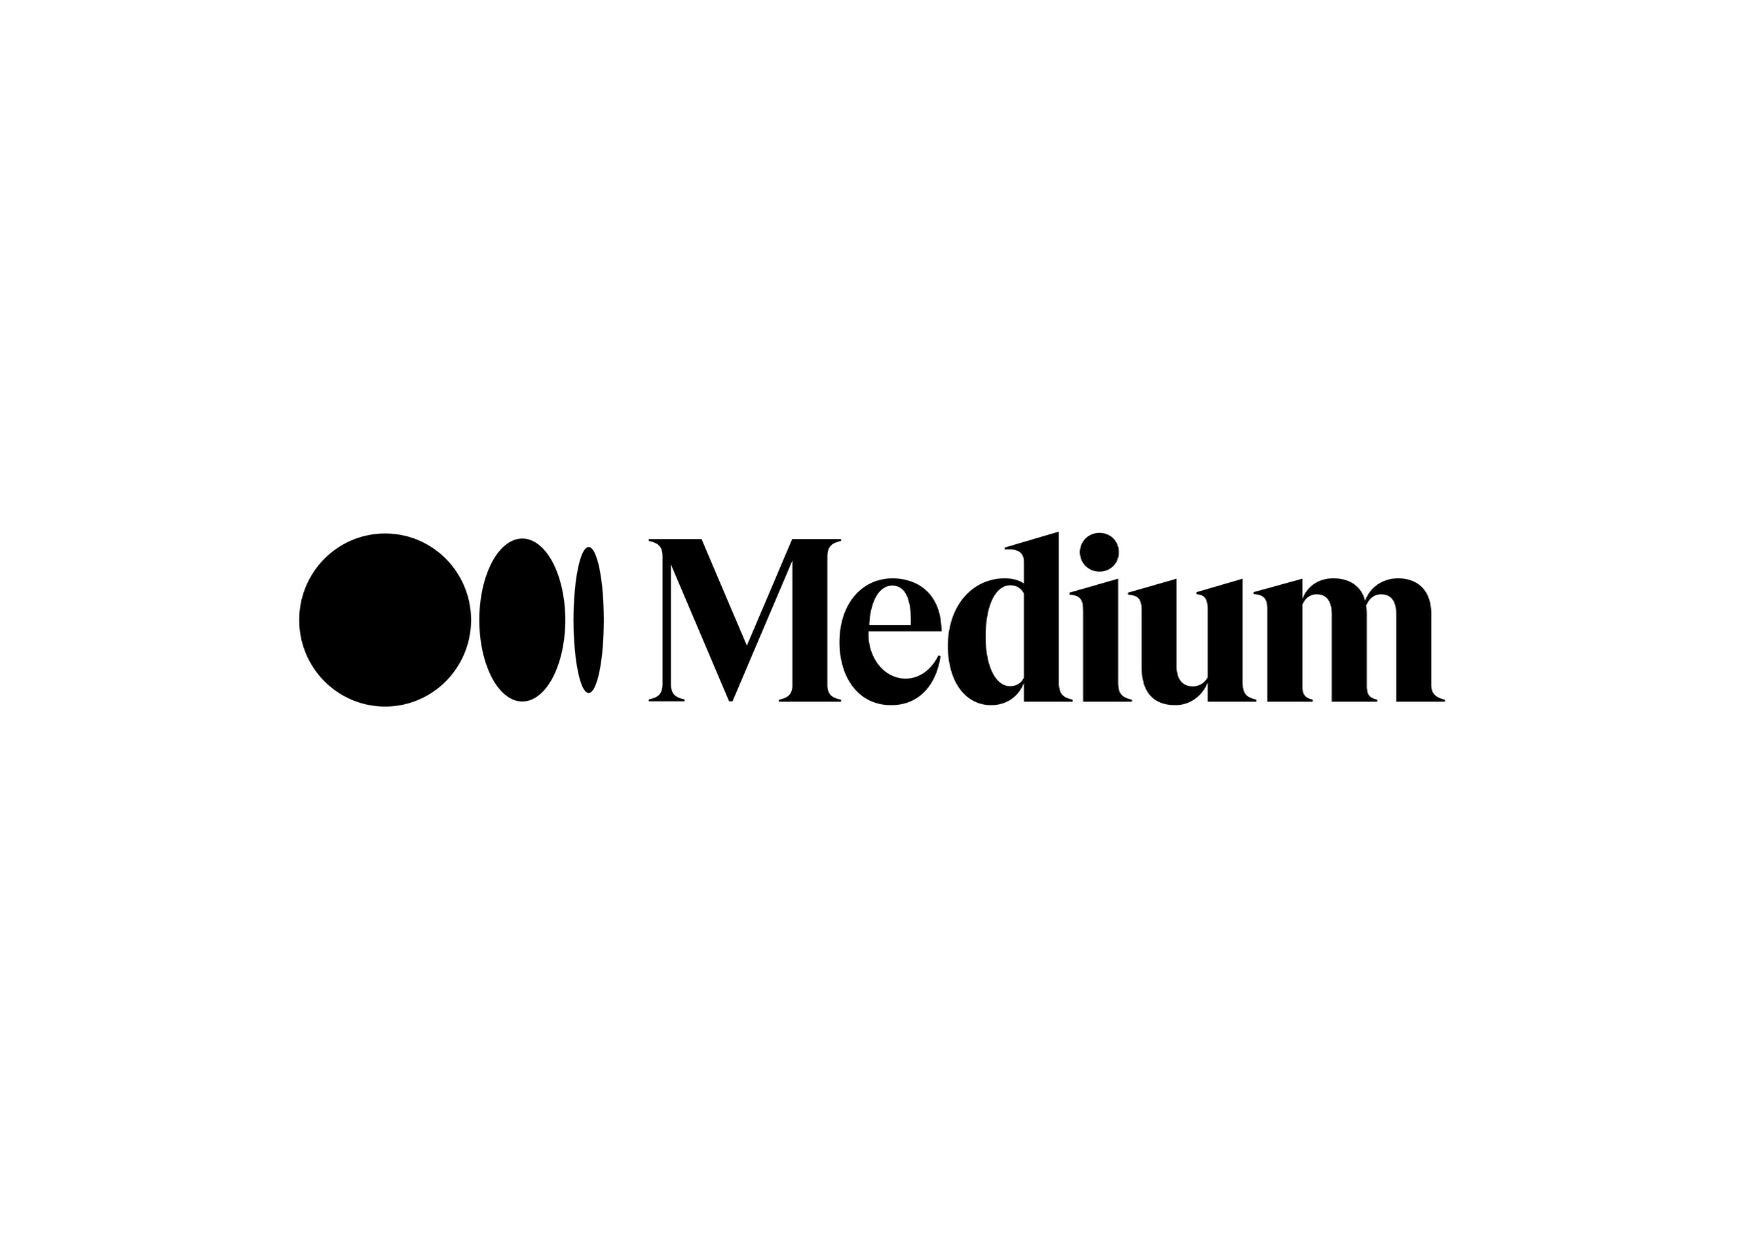 Noreena's interview in Medium's The Ascent